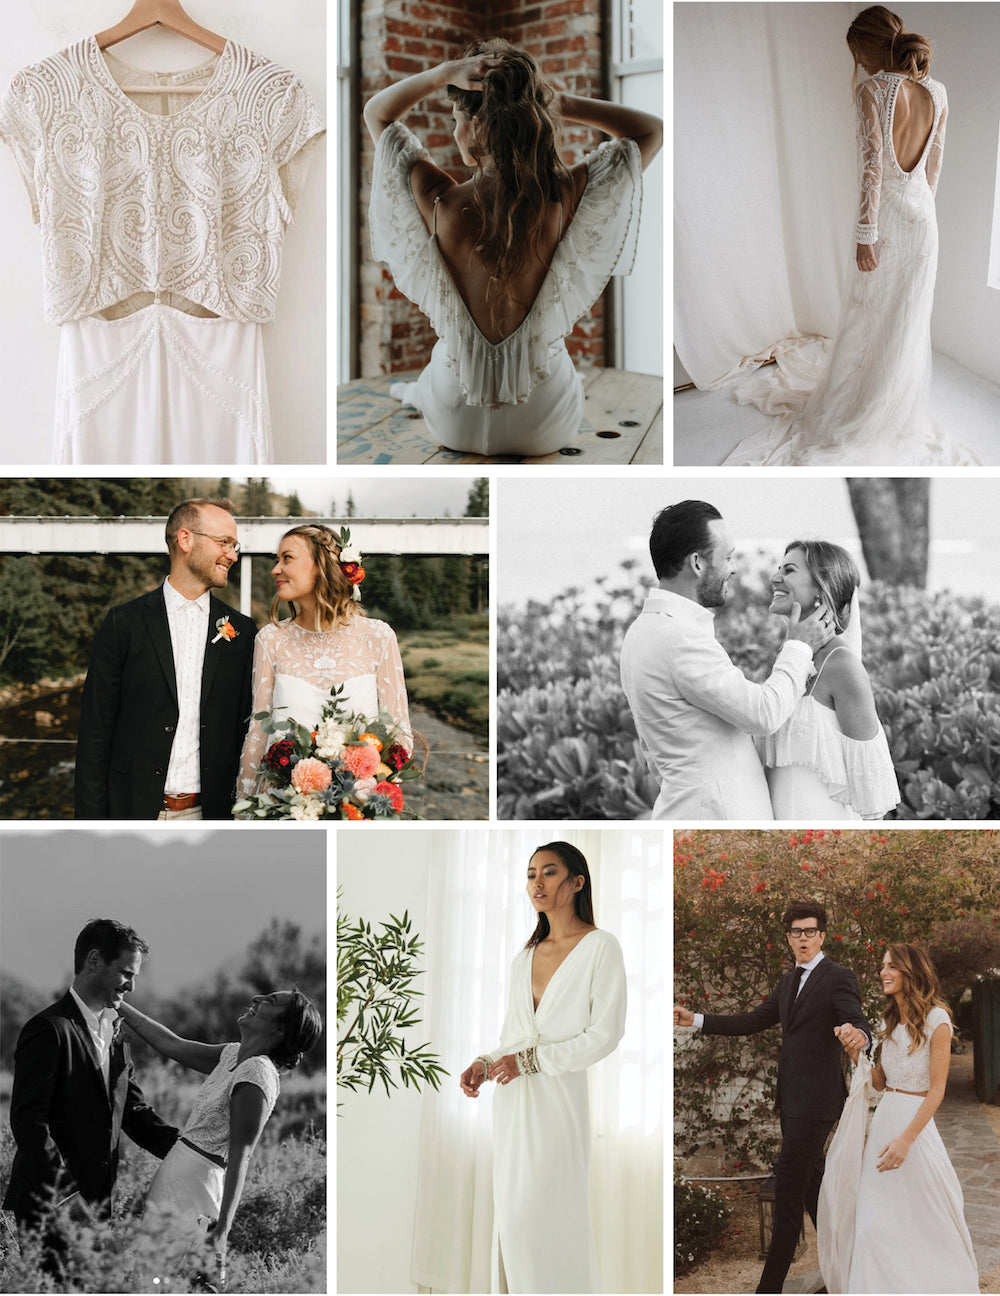 bo & Luca wedding dresses